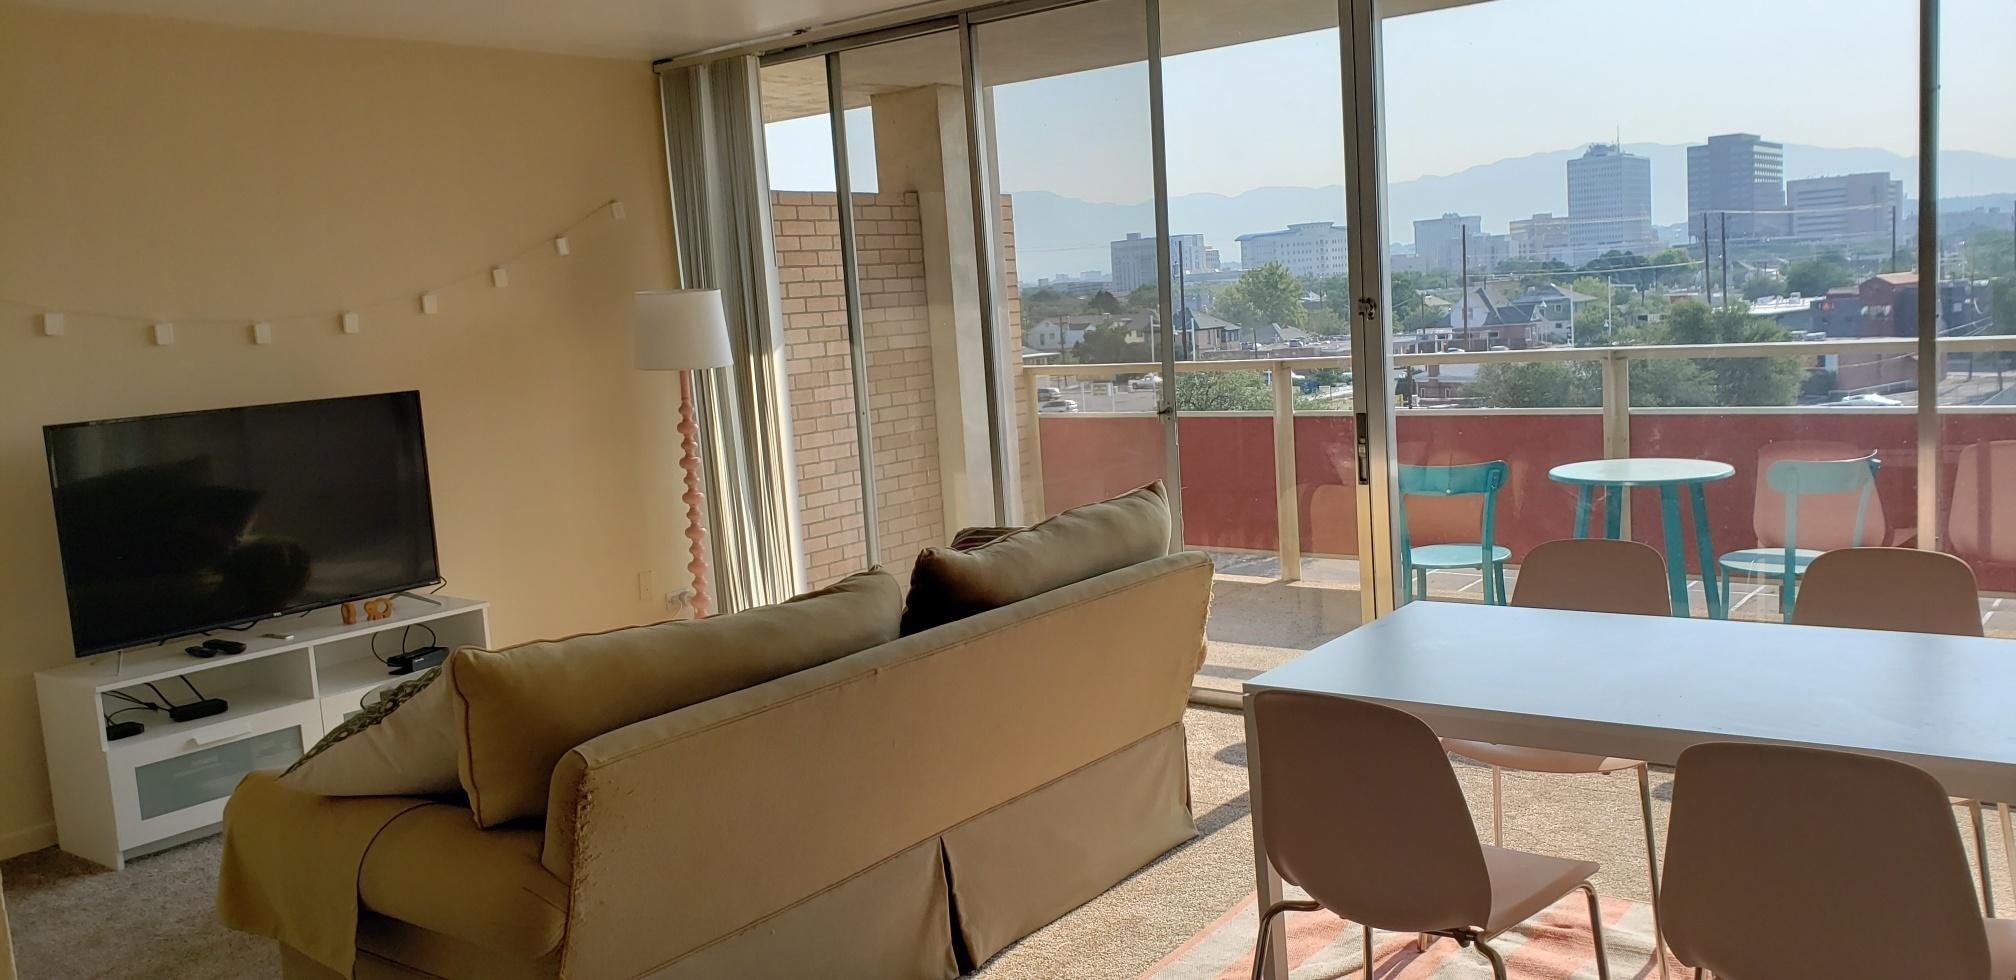 VIEWS, VIEWS, VIEWS! This Downtown Condo features a large Balcony to enjoy the Views from. This Condo is facing East with Views of Downtown and the Sandia Mountains. Very spacious, light and bright. The HOA dues cover all utilities, one reserved covered parking space, pool, exercise room, and so much more--see attached Facilities/Amenities list.